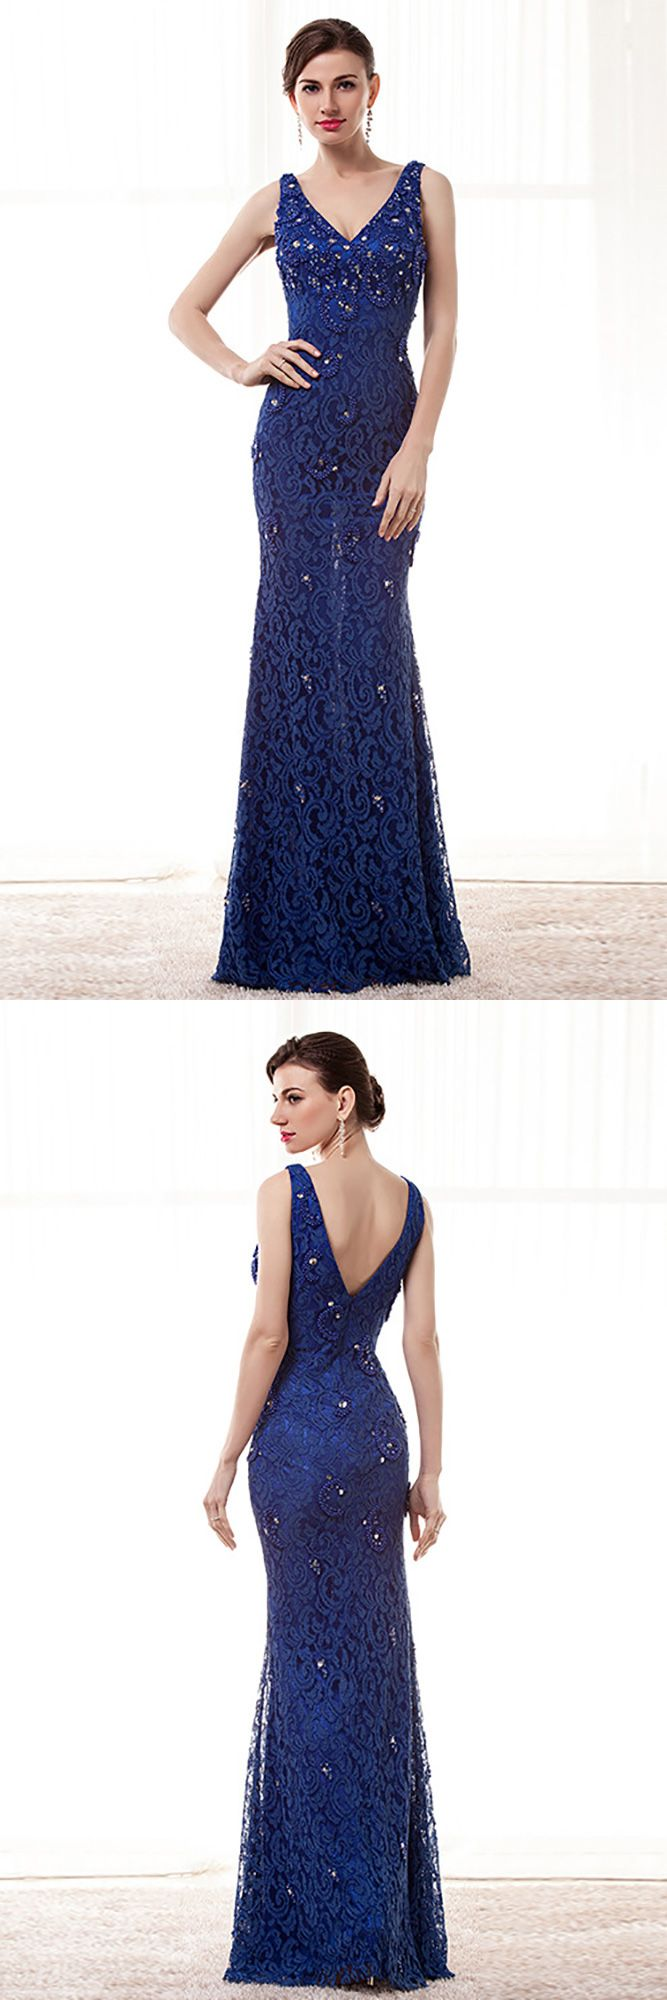 Only $168.99, Evening Dresses Petite Fitted Dark Blue Lace Formal Dress With Crystal Beading #H76051 at #GemGrace. View more special Evening Dresses now? GemGrace is a solution for those who want to buy delicate gowns with affordable prices, a solution for those who have unique ideas about their gowns. 2018 new arrivals, shop now to get $10 off!